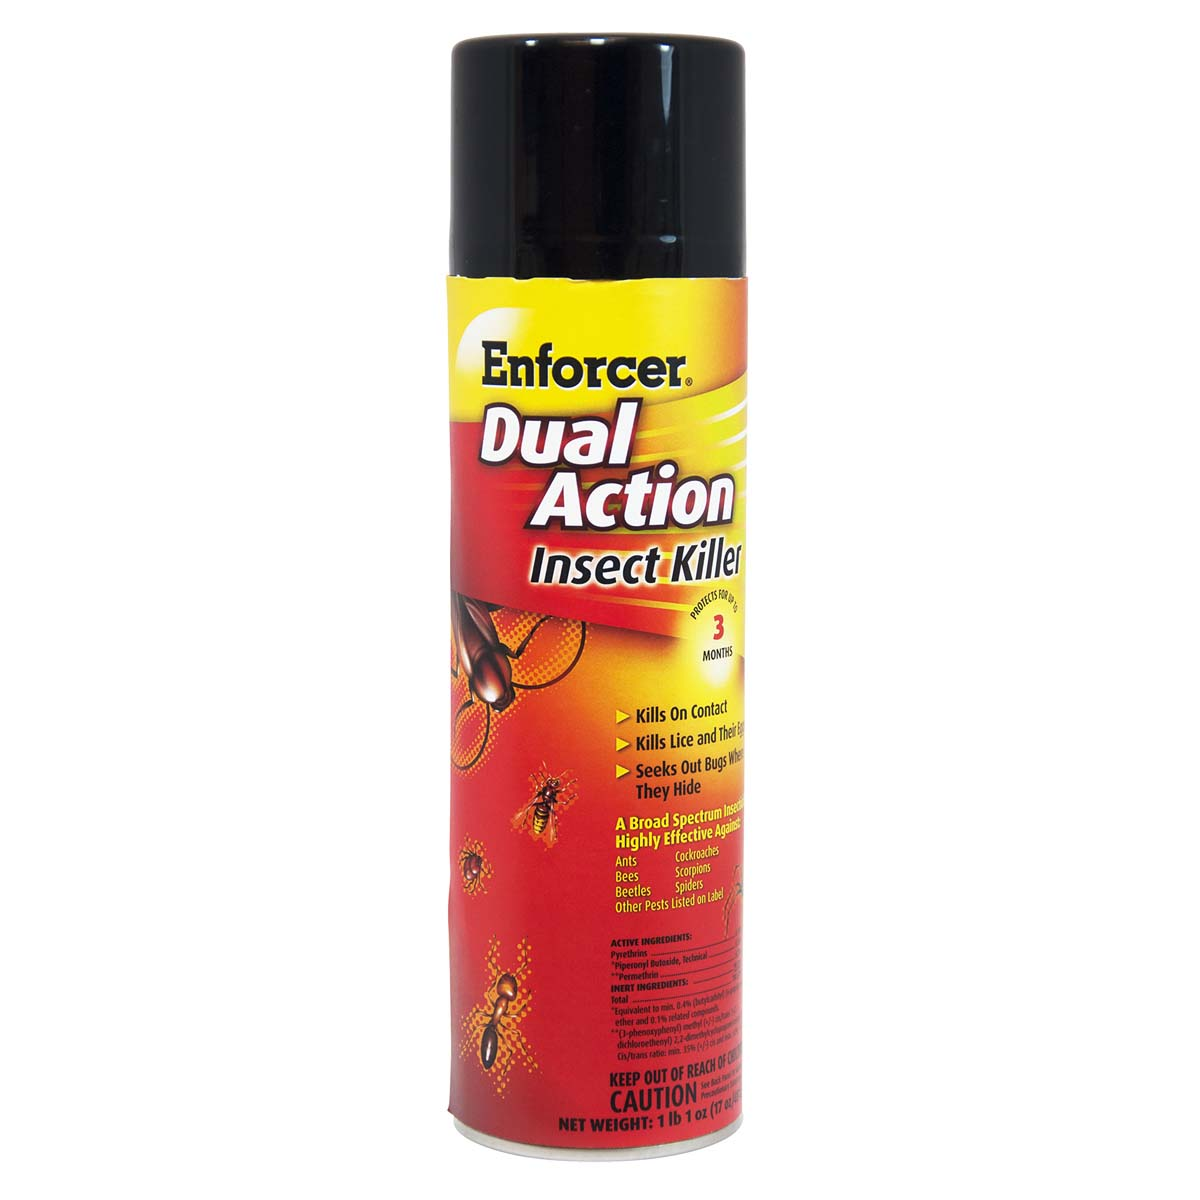 Enforcer Dual Action Insect Killer